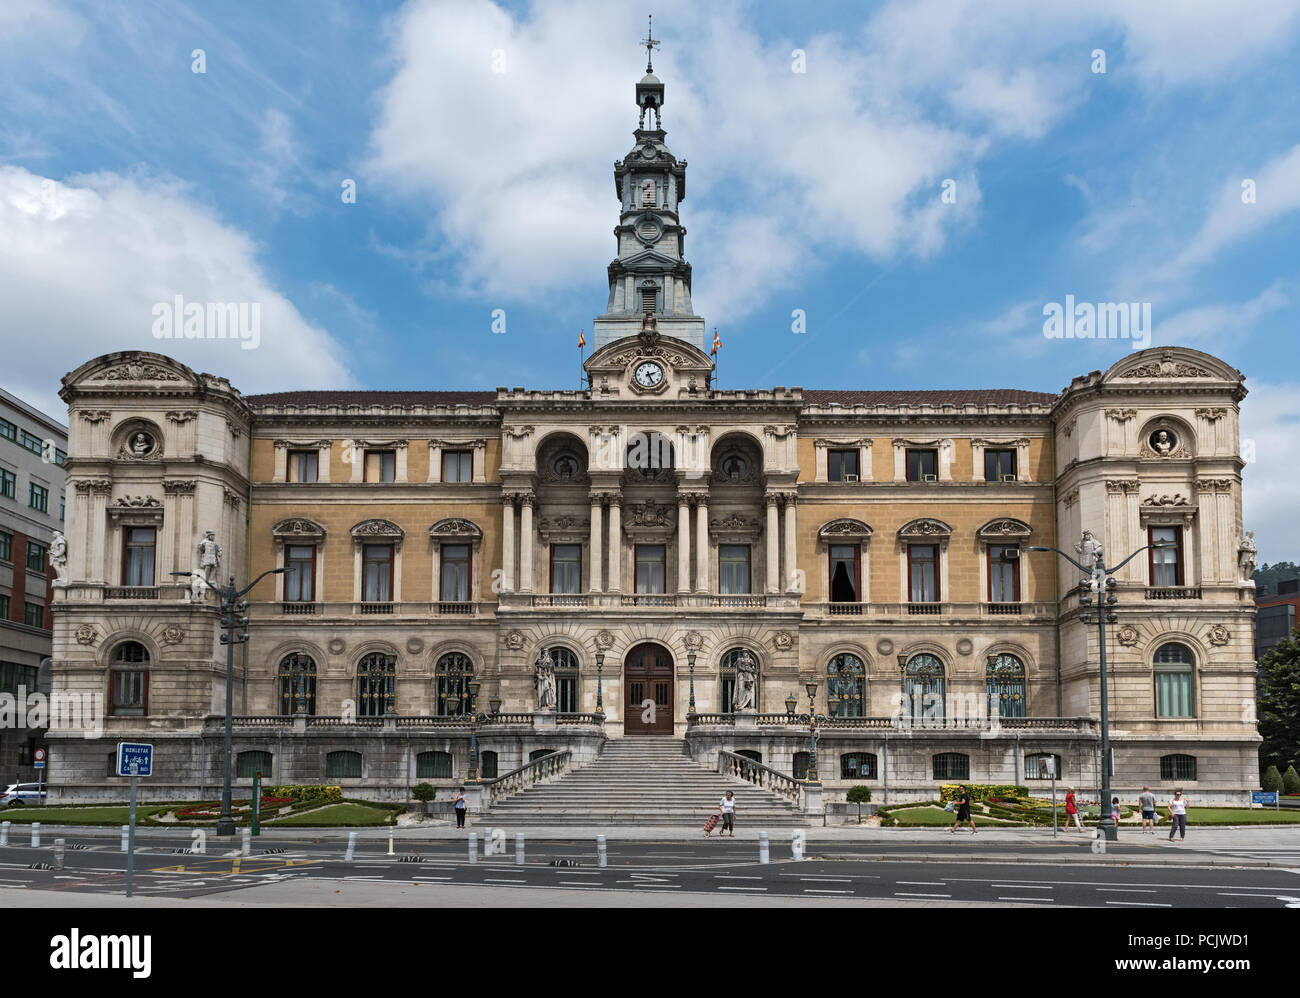 facade of the bilbao town hall at plaza ernesto erkoreka, bilbao, spain. - Stock Image